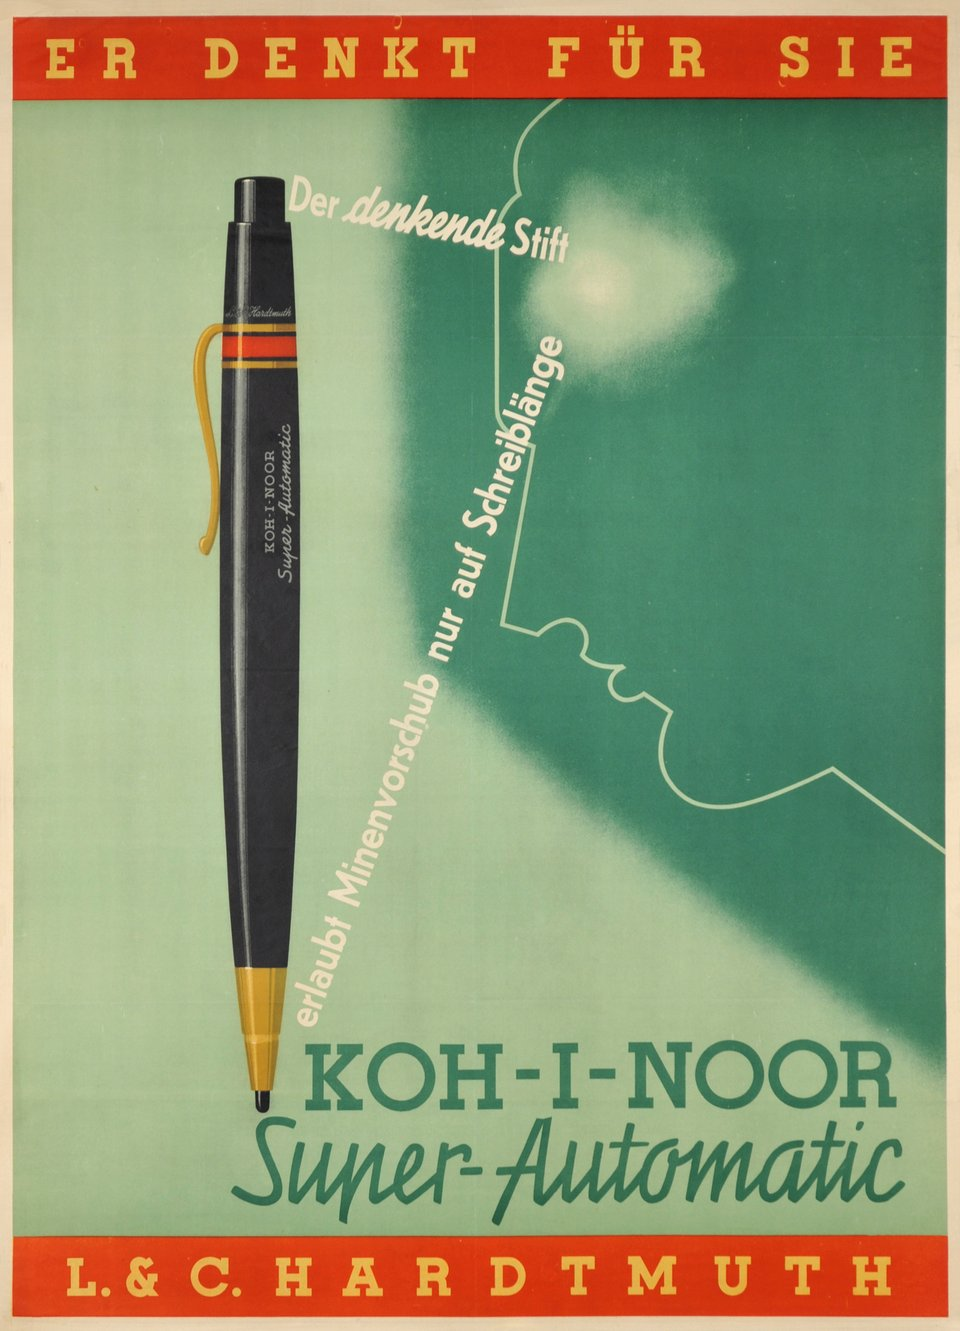 Koh-I-Noor Super-Automatic – Affiche ancienne –  ANONYME – 1930